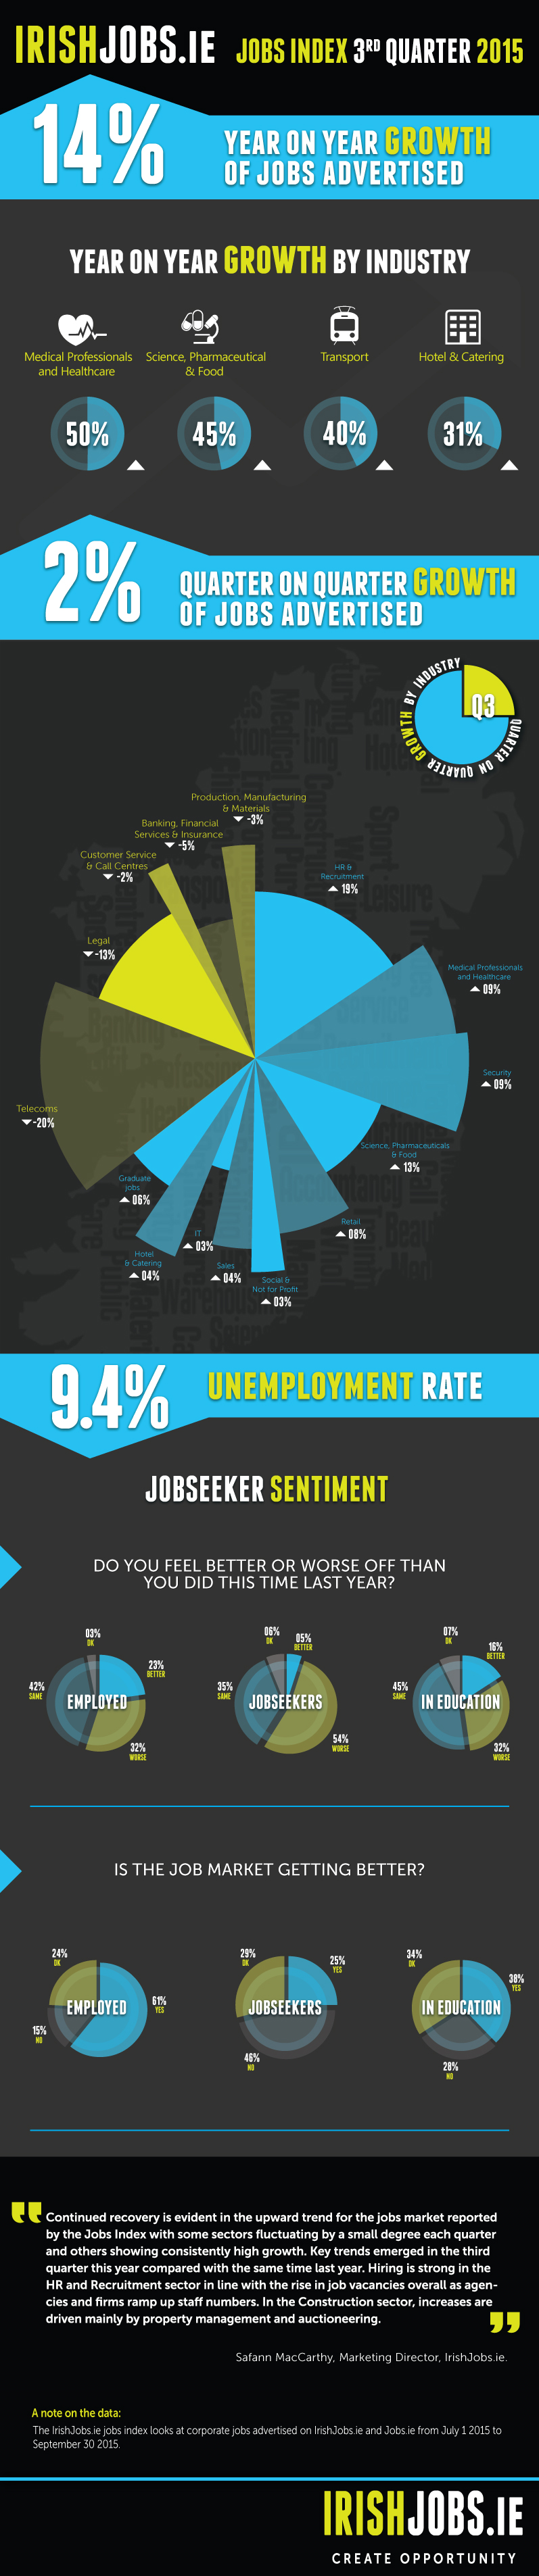 Jobs Index Q3 2015_Infographic